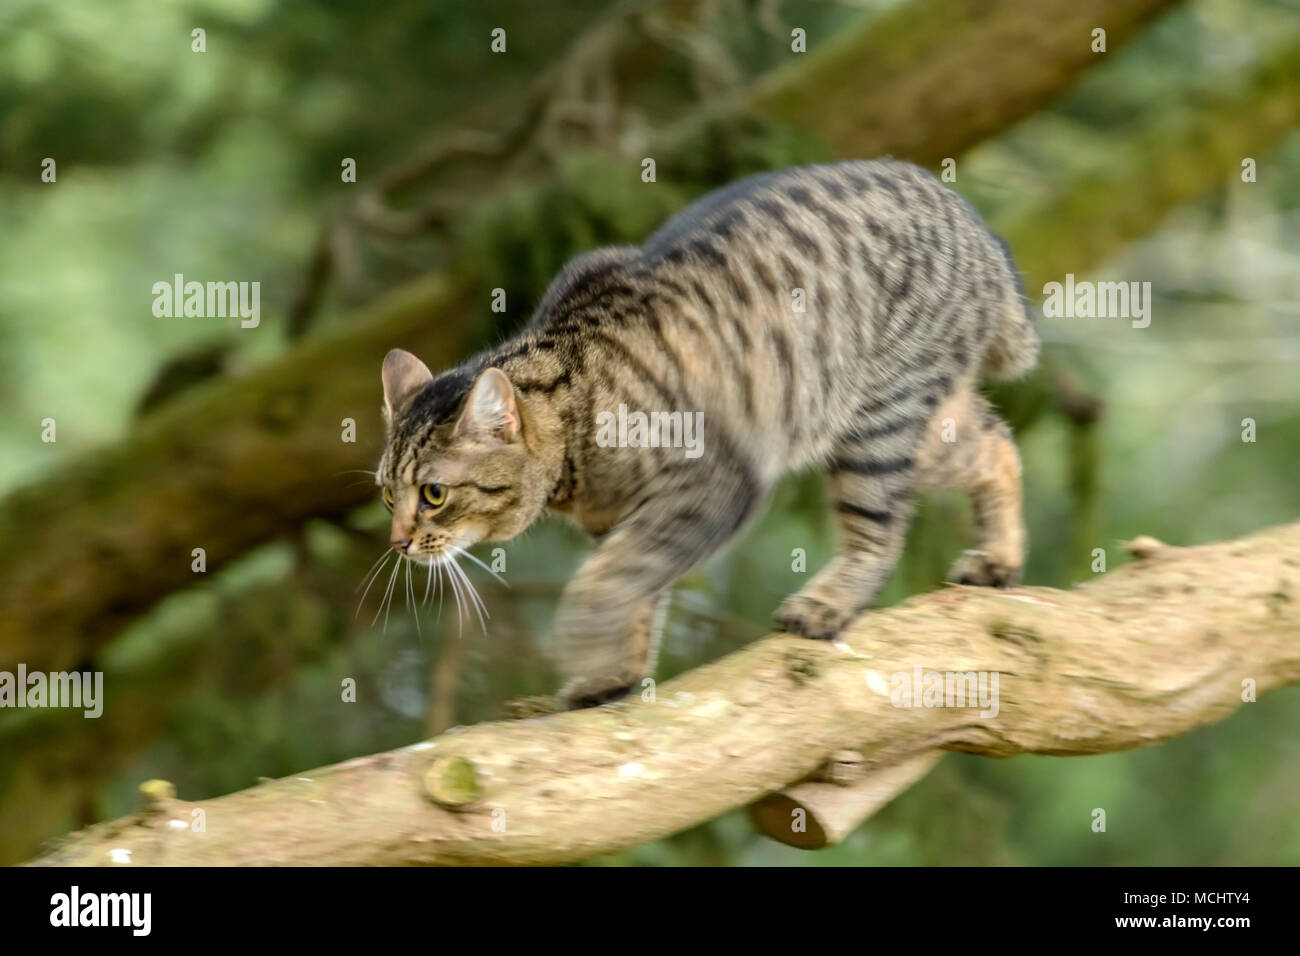 Young tabby cat, bengal cat walking along a tree branch, leg movement and blur, on a Monterey Cyprus tree - Stock Image